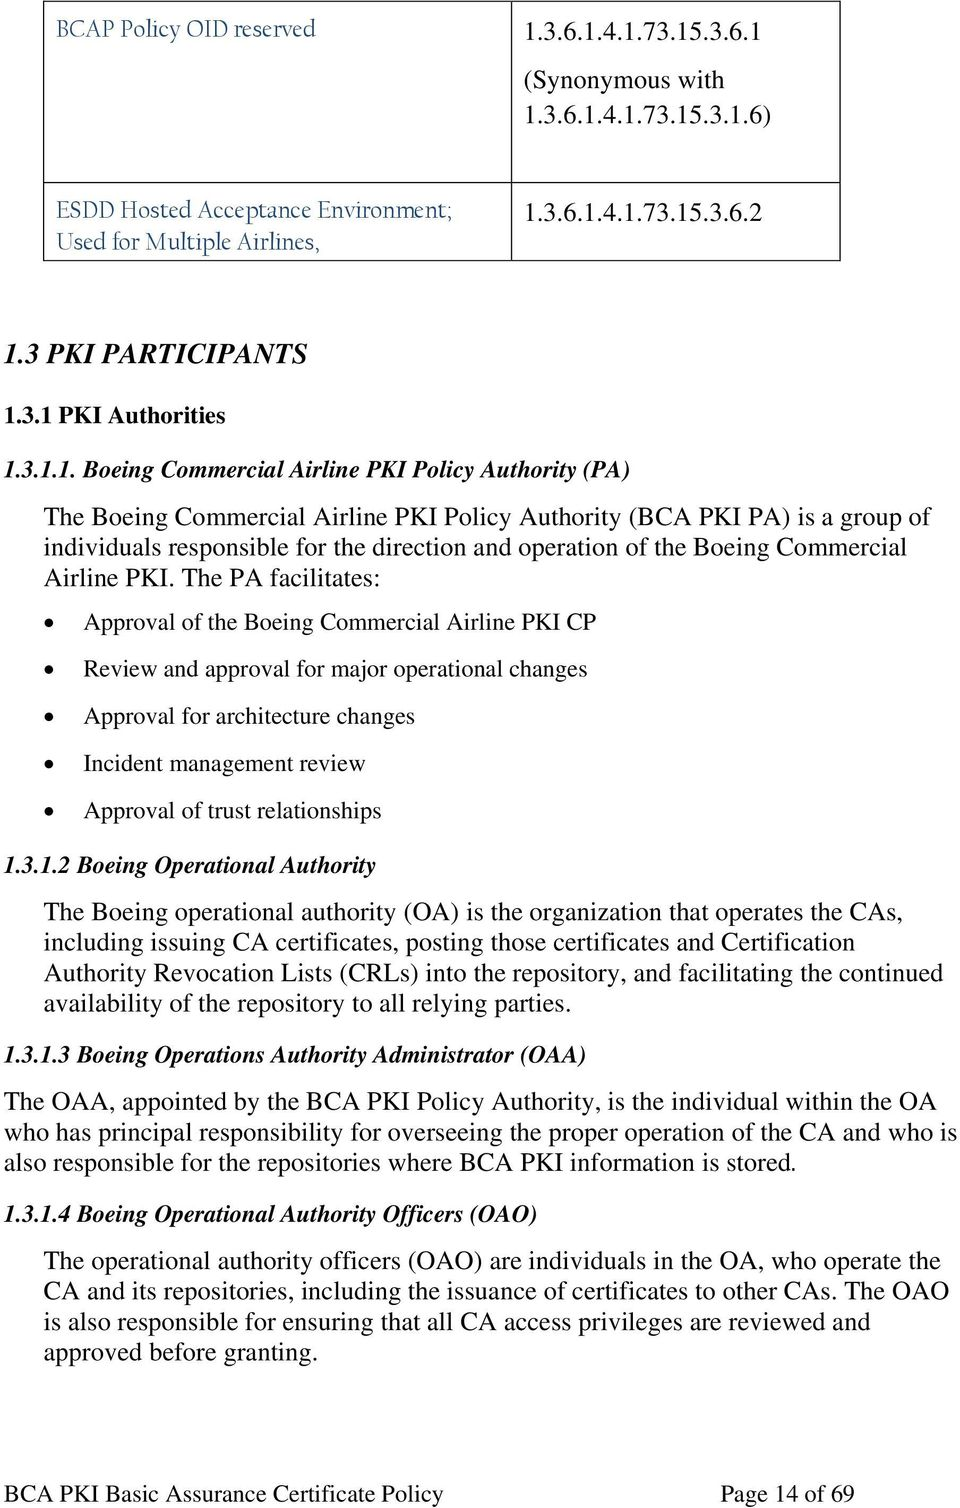 3.1 PKI Authorities 1.3.1.1. Boeing Commercial Airline PKI Policy Authority (PA) The Boeing Commercial Airline PKI Policy Authority (BCA PKI PA) is a group of individuals responsible for the